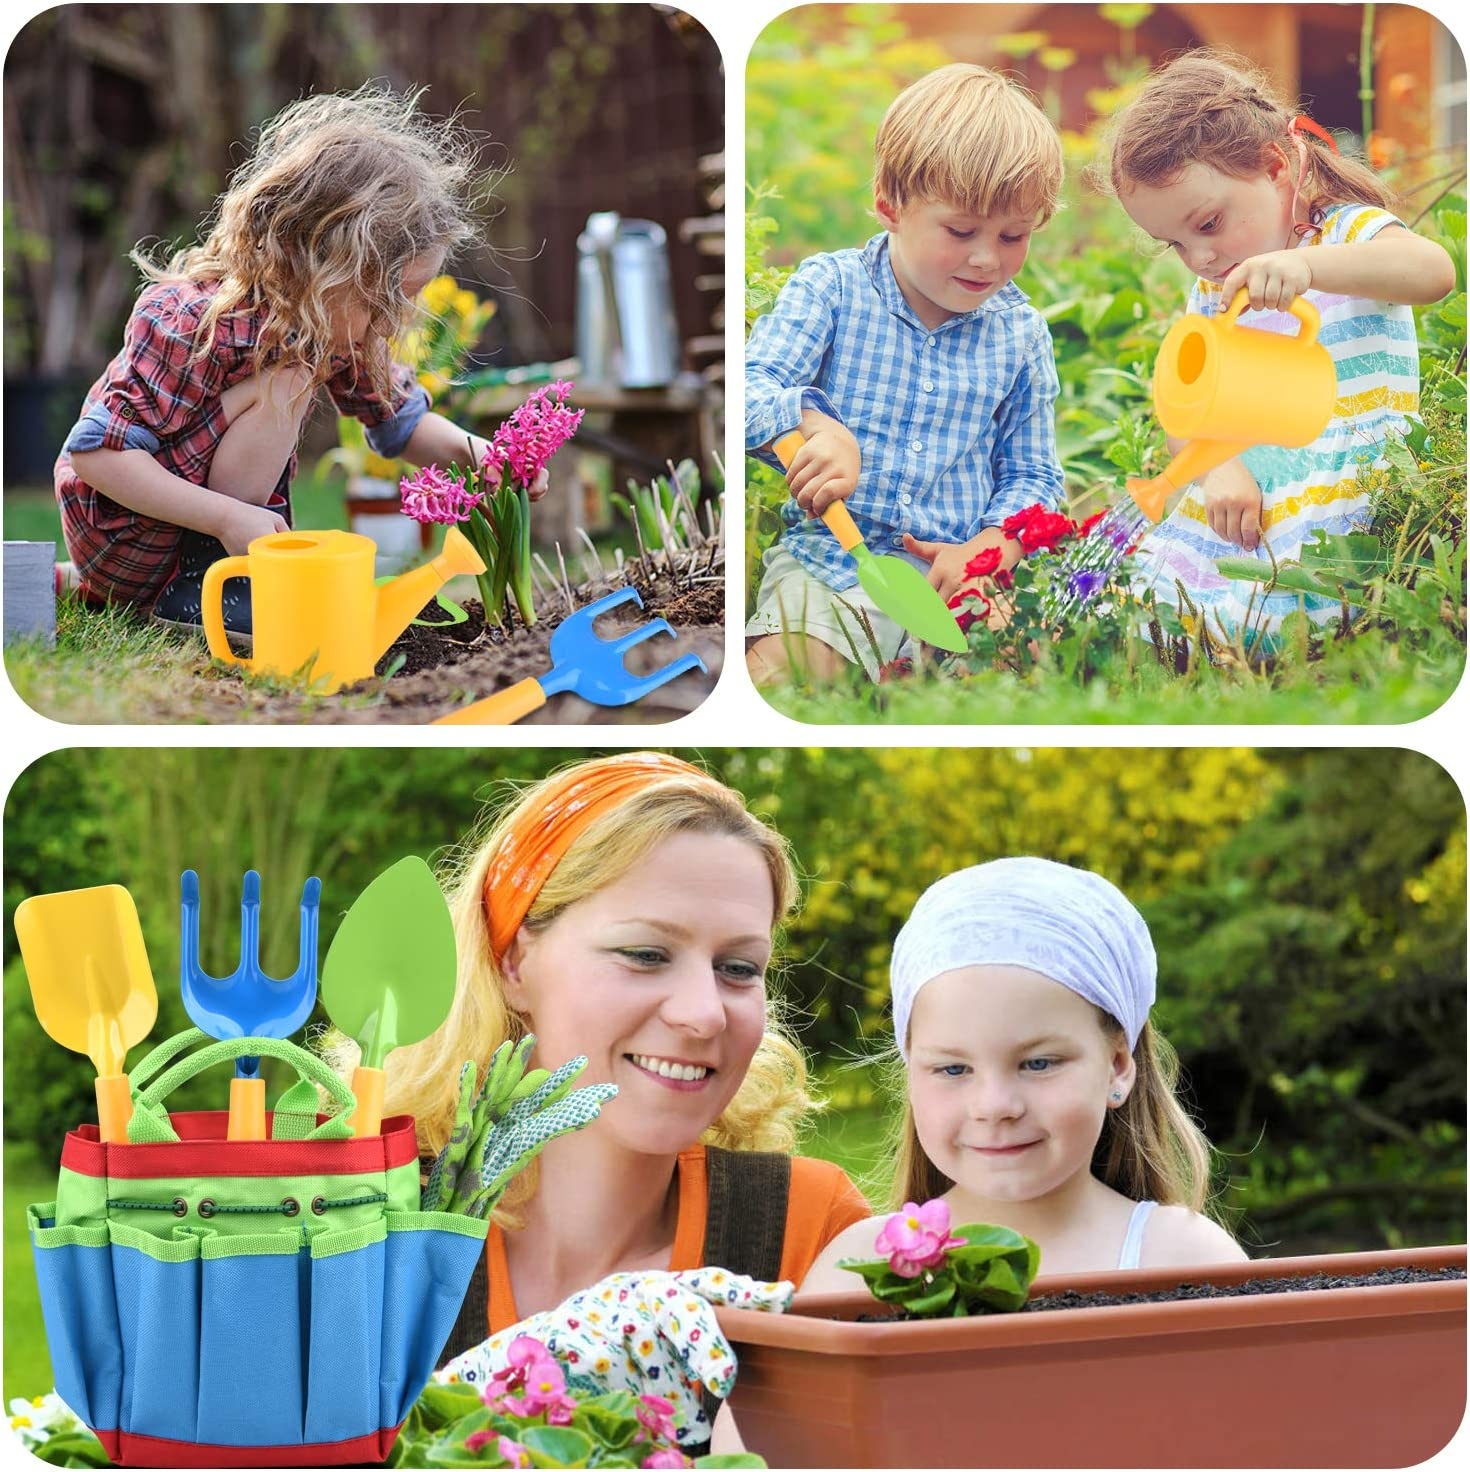 NOUVCOO Gardening Tools Set for Kids, 7 PCS Garden Tools Covering Garden Sturdy Tote, Watering Can, Shovel, Rake, Fork, Children Gardening Gloves and a Kids Delightful Booklet How to Garden, NC27